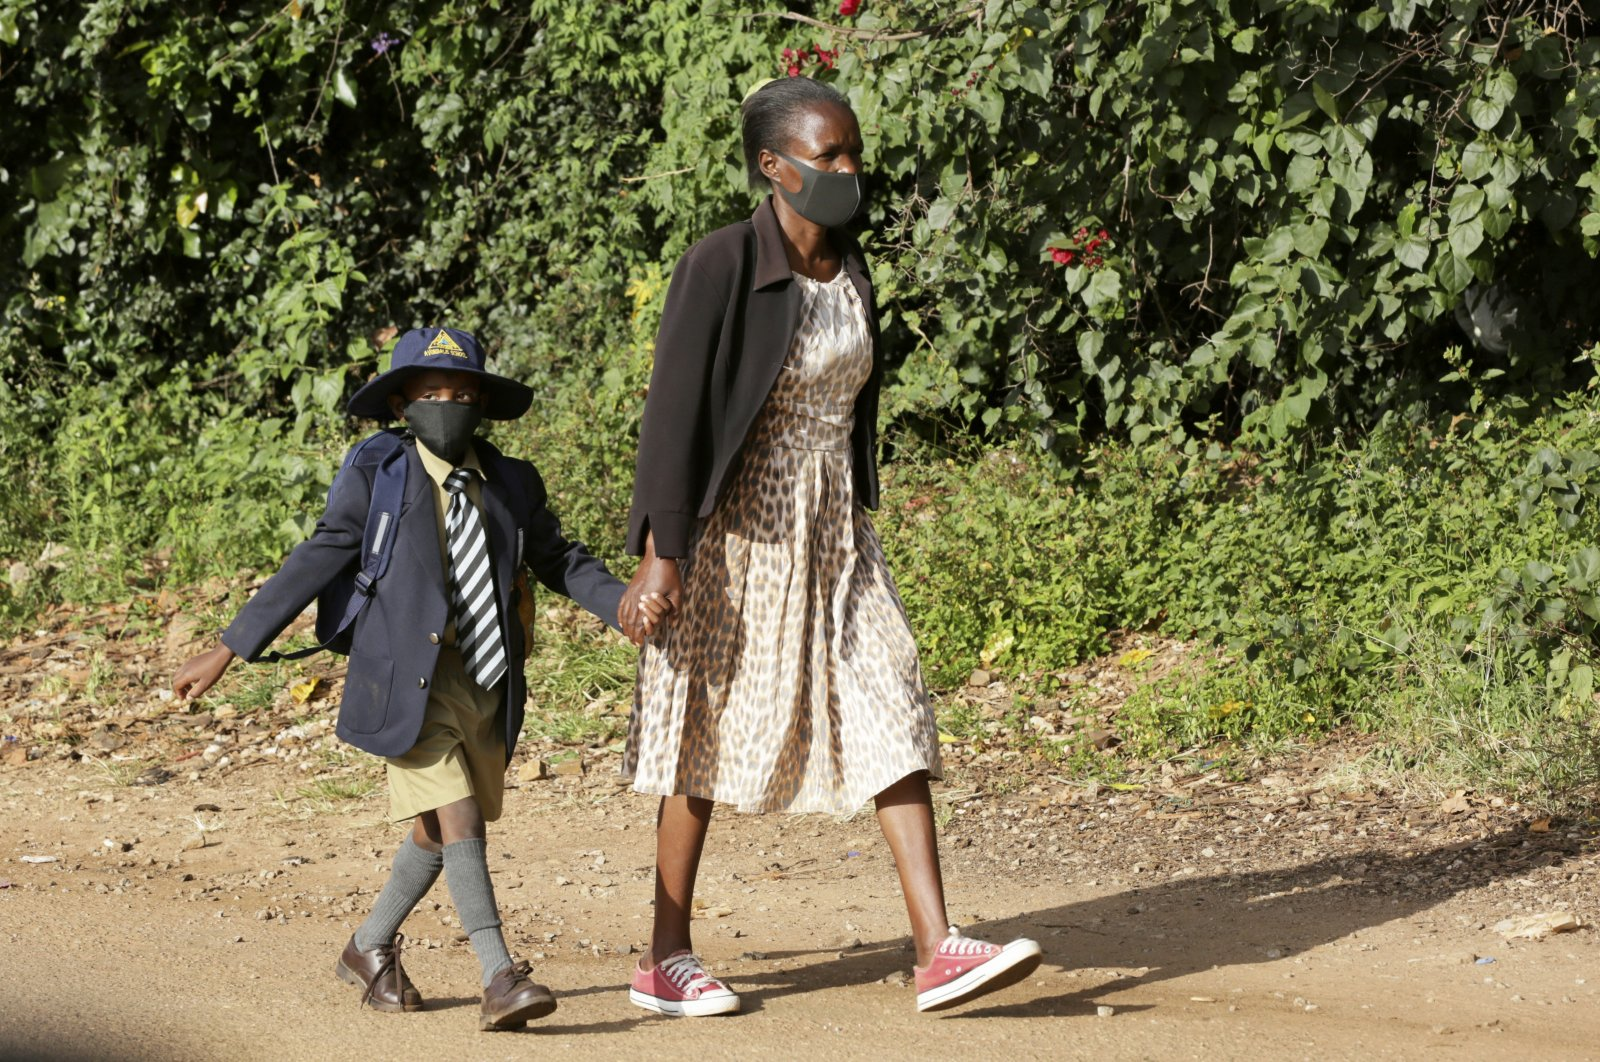 A child wears a face mask to curb the spread of COVID-19 on his way to school following the reopening of schools in Harare, Zimbabwe, March 22, 2021. (AP Photo)